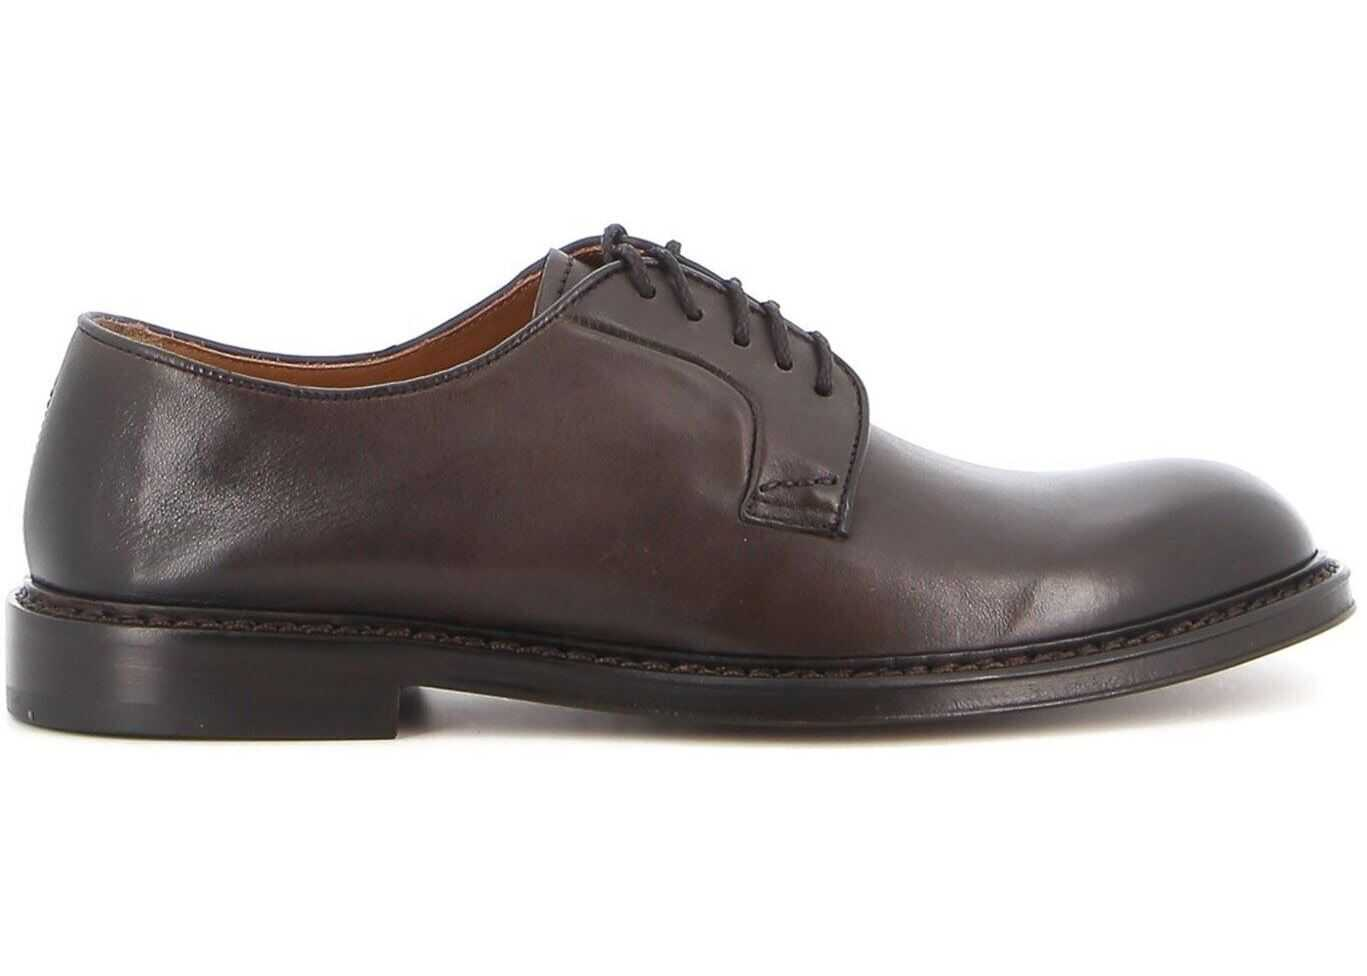 Doucal's Harley Derby Shoes DU1385PHOEUY196TM00 Brown imagine b-mall.ro